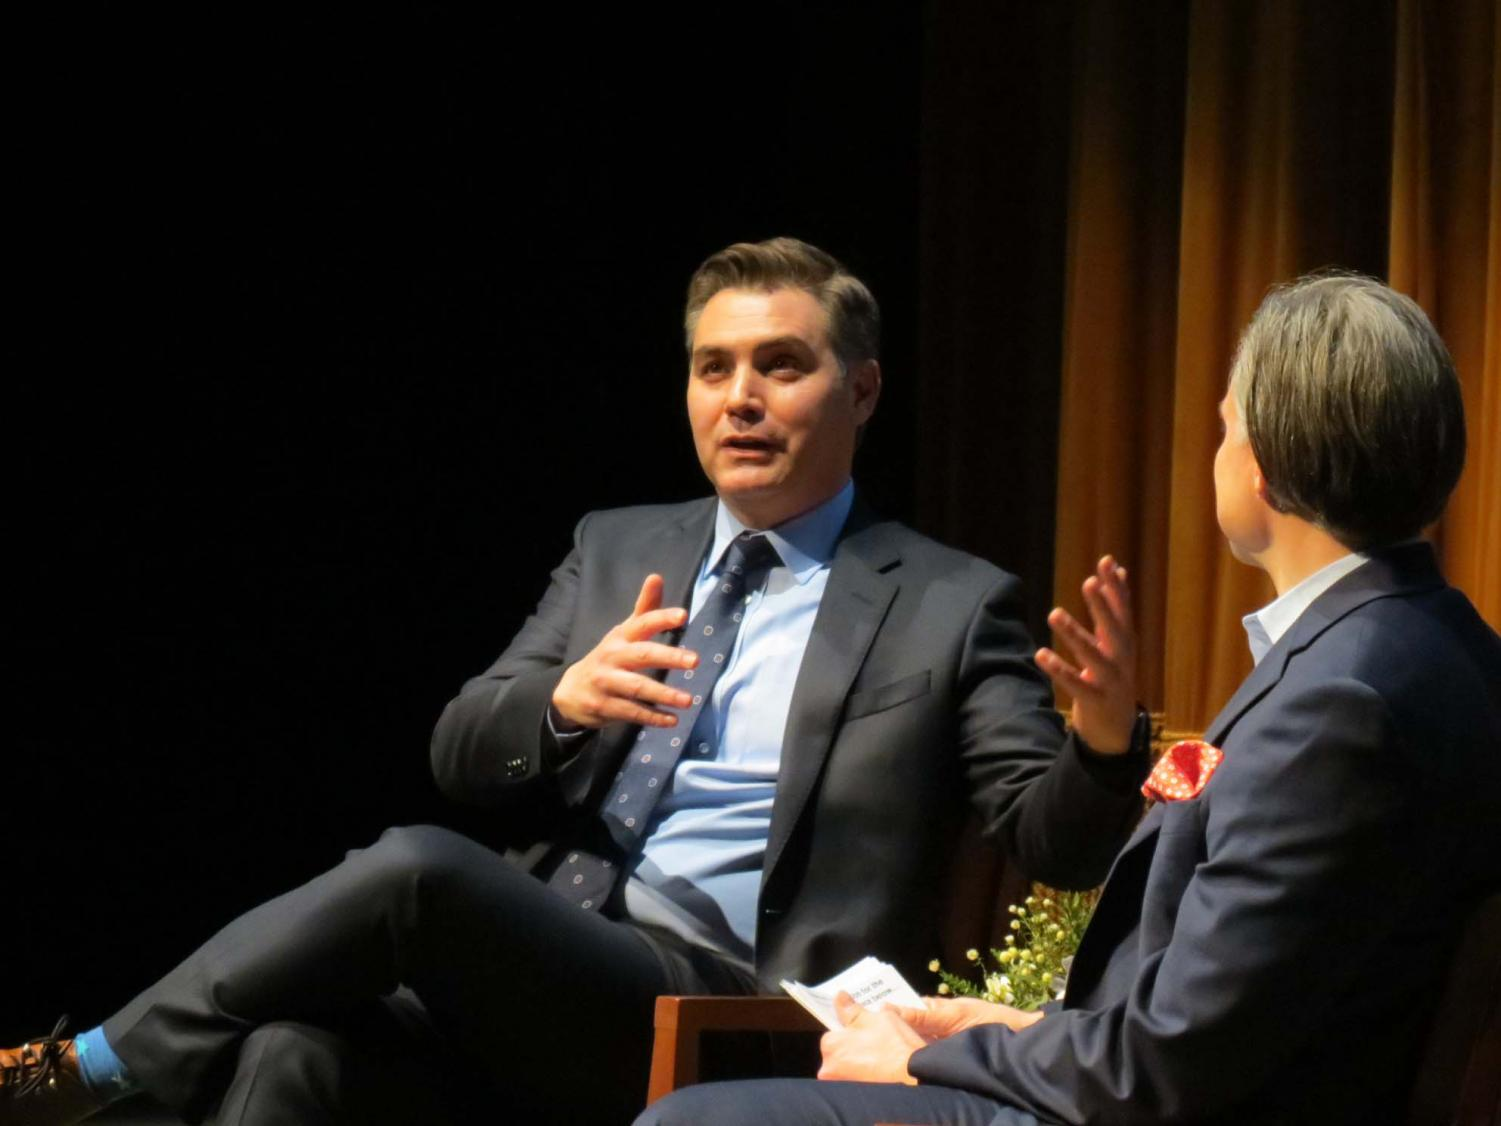 """Jim Acosta, CNN's chief White House correspondent, visited Point Park University's Pittsburgh Playhouse and discussed his new book """"The Enemy of the People: A Dangerous Time to Tell the Truth in America,"""" as well as his experiences in the White House."""